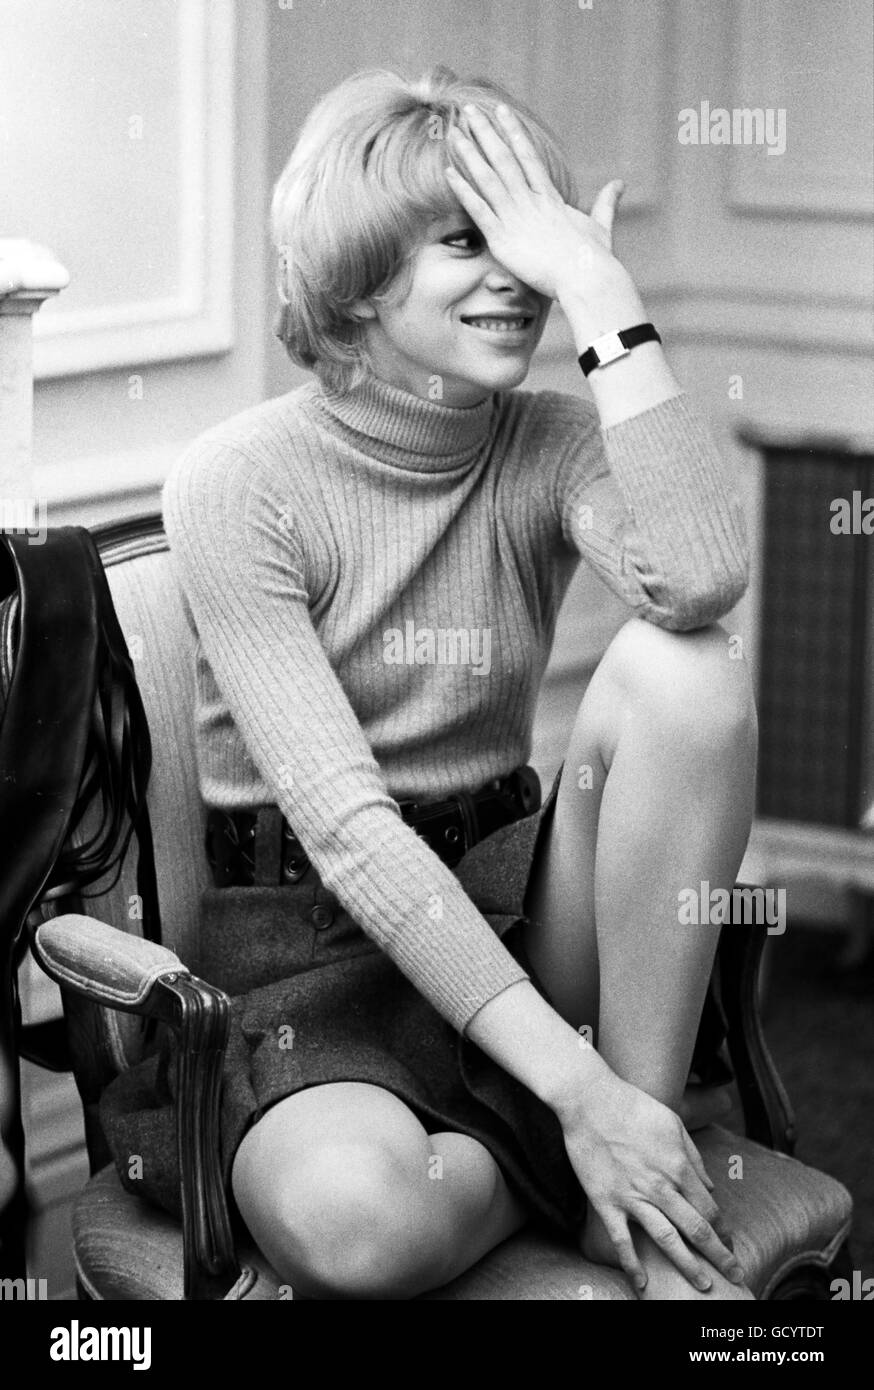 Mireille Darc, photographed in 1969. - Stock Image